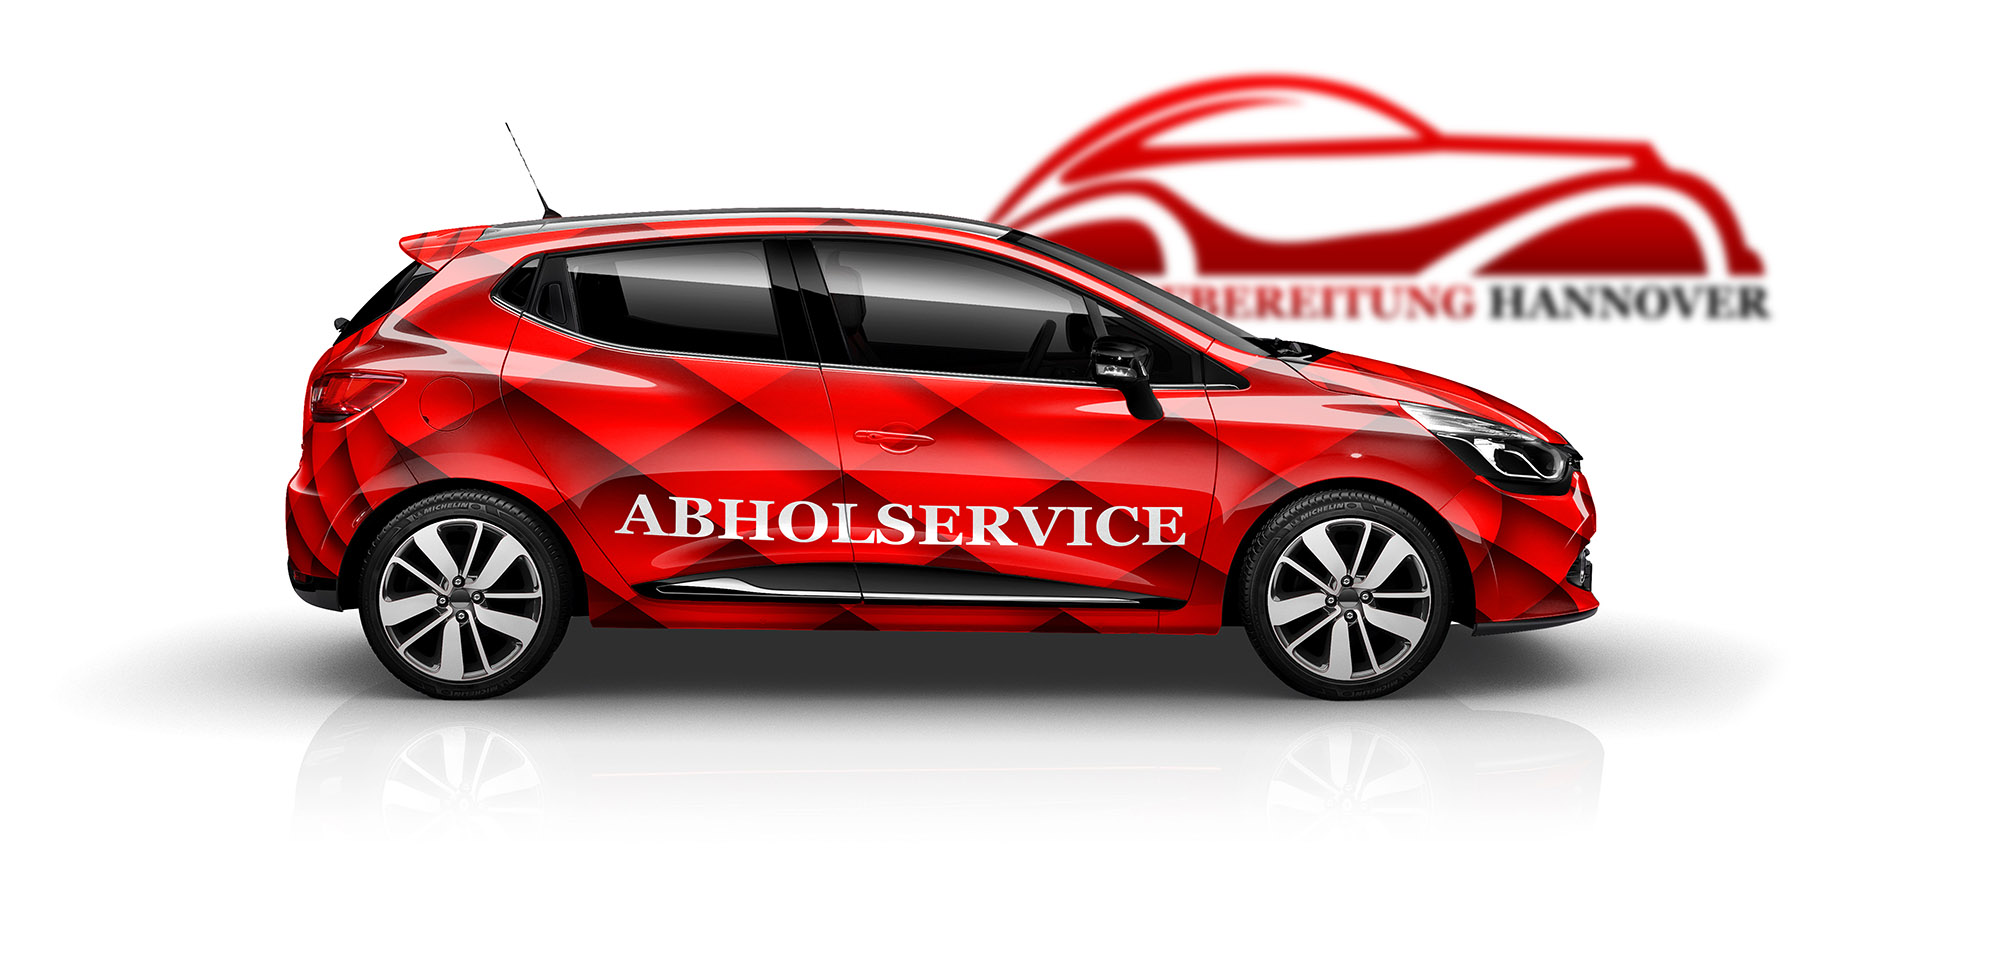 autoaufbereitung-hannover-abholservice